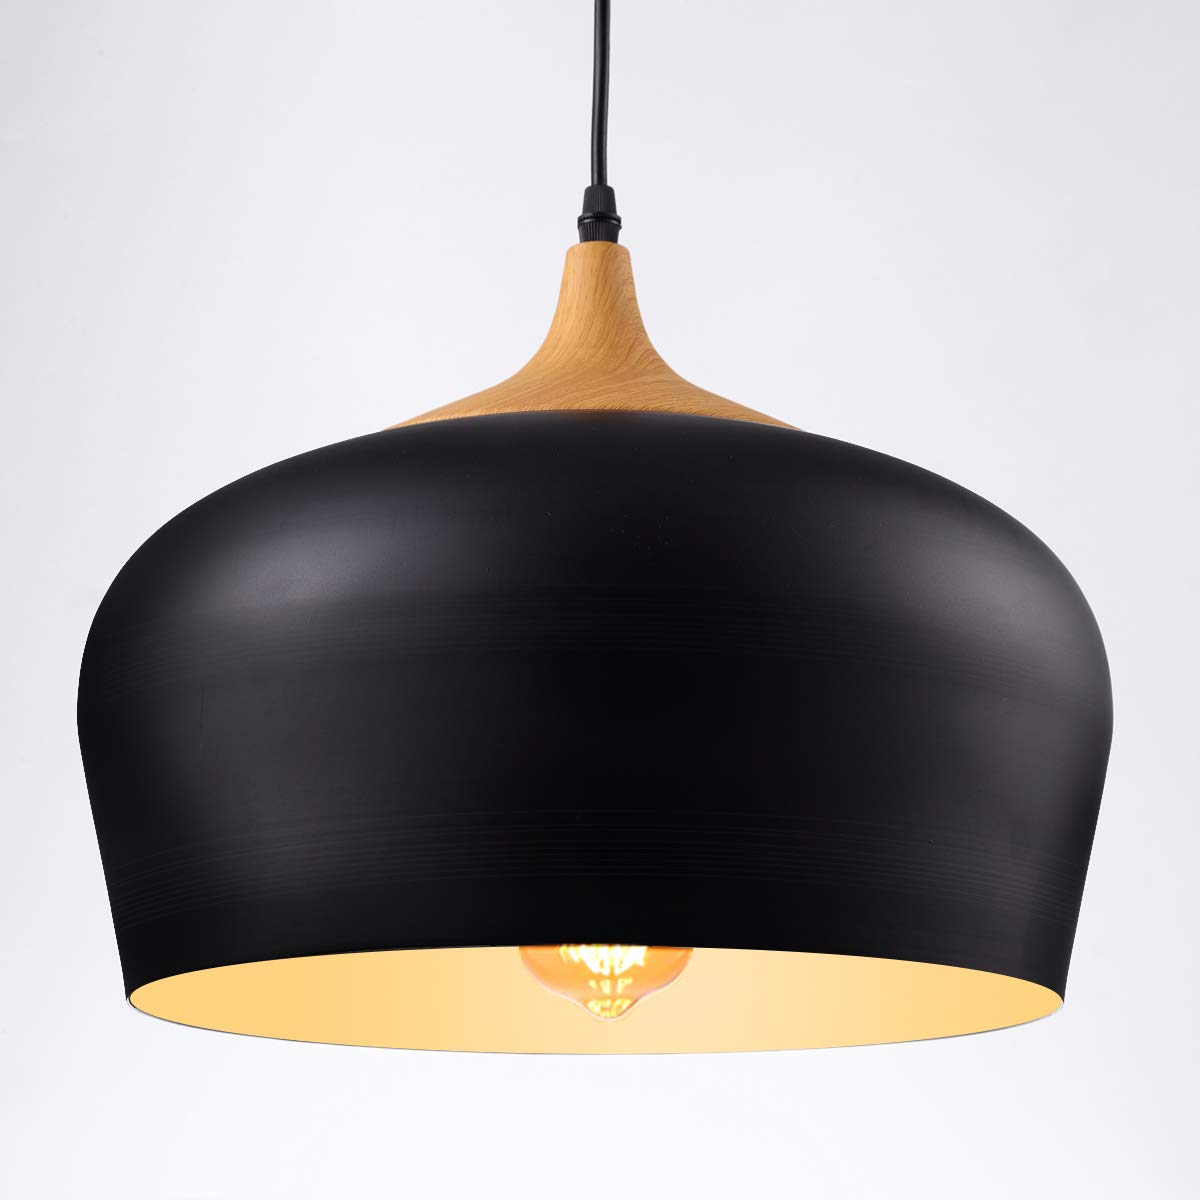 Homiforce vintage style 1 light large black dome pendant light with metal shade in matte black finish modern industrial edison style hanging